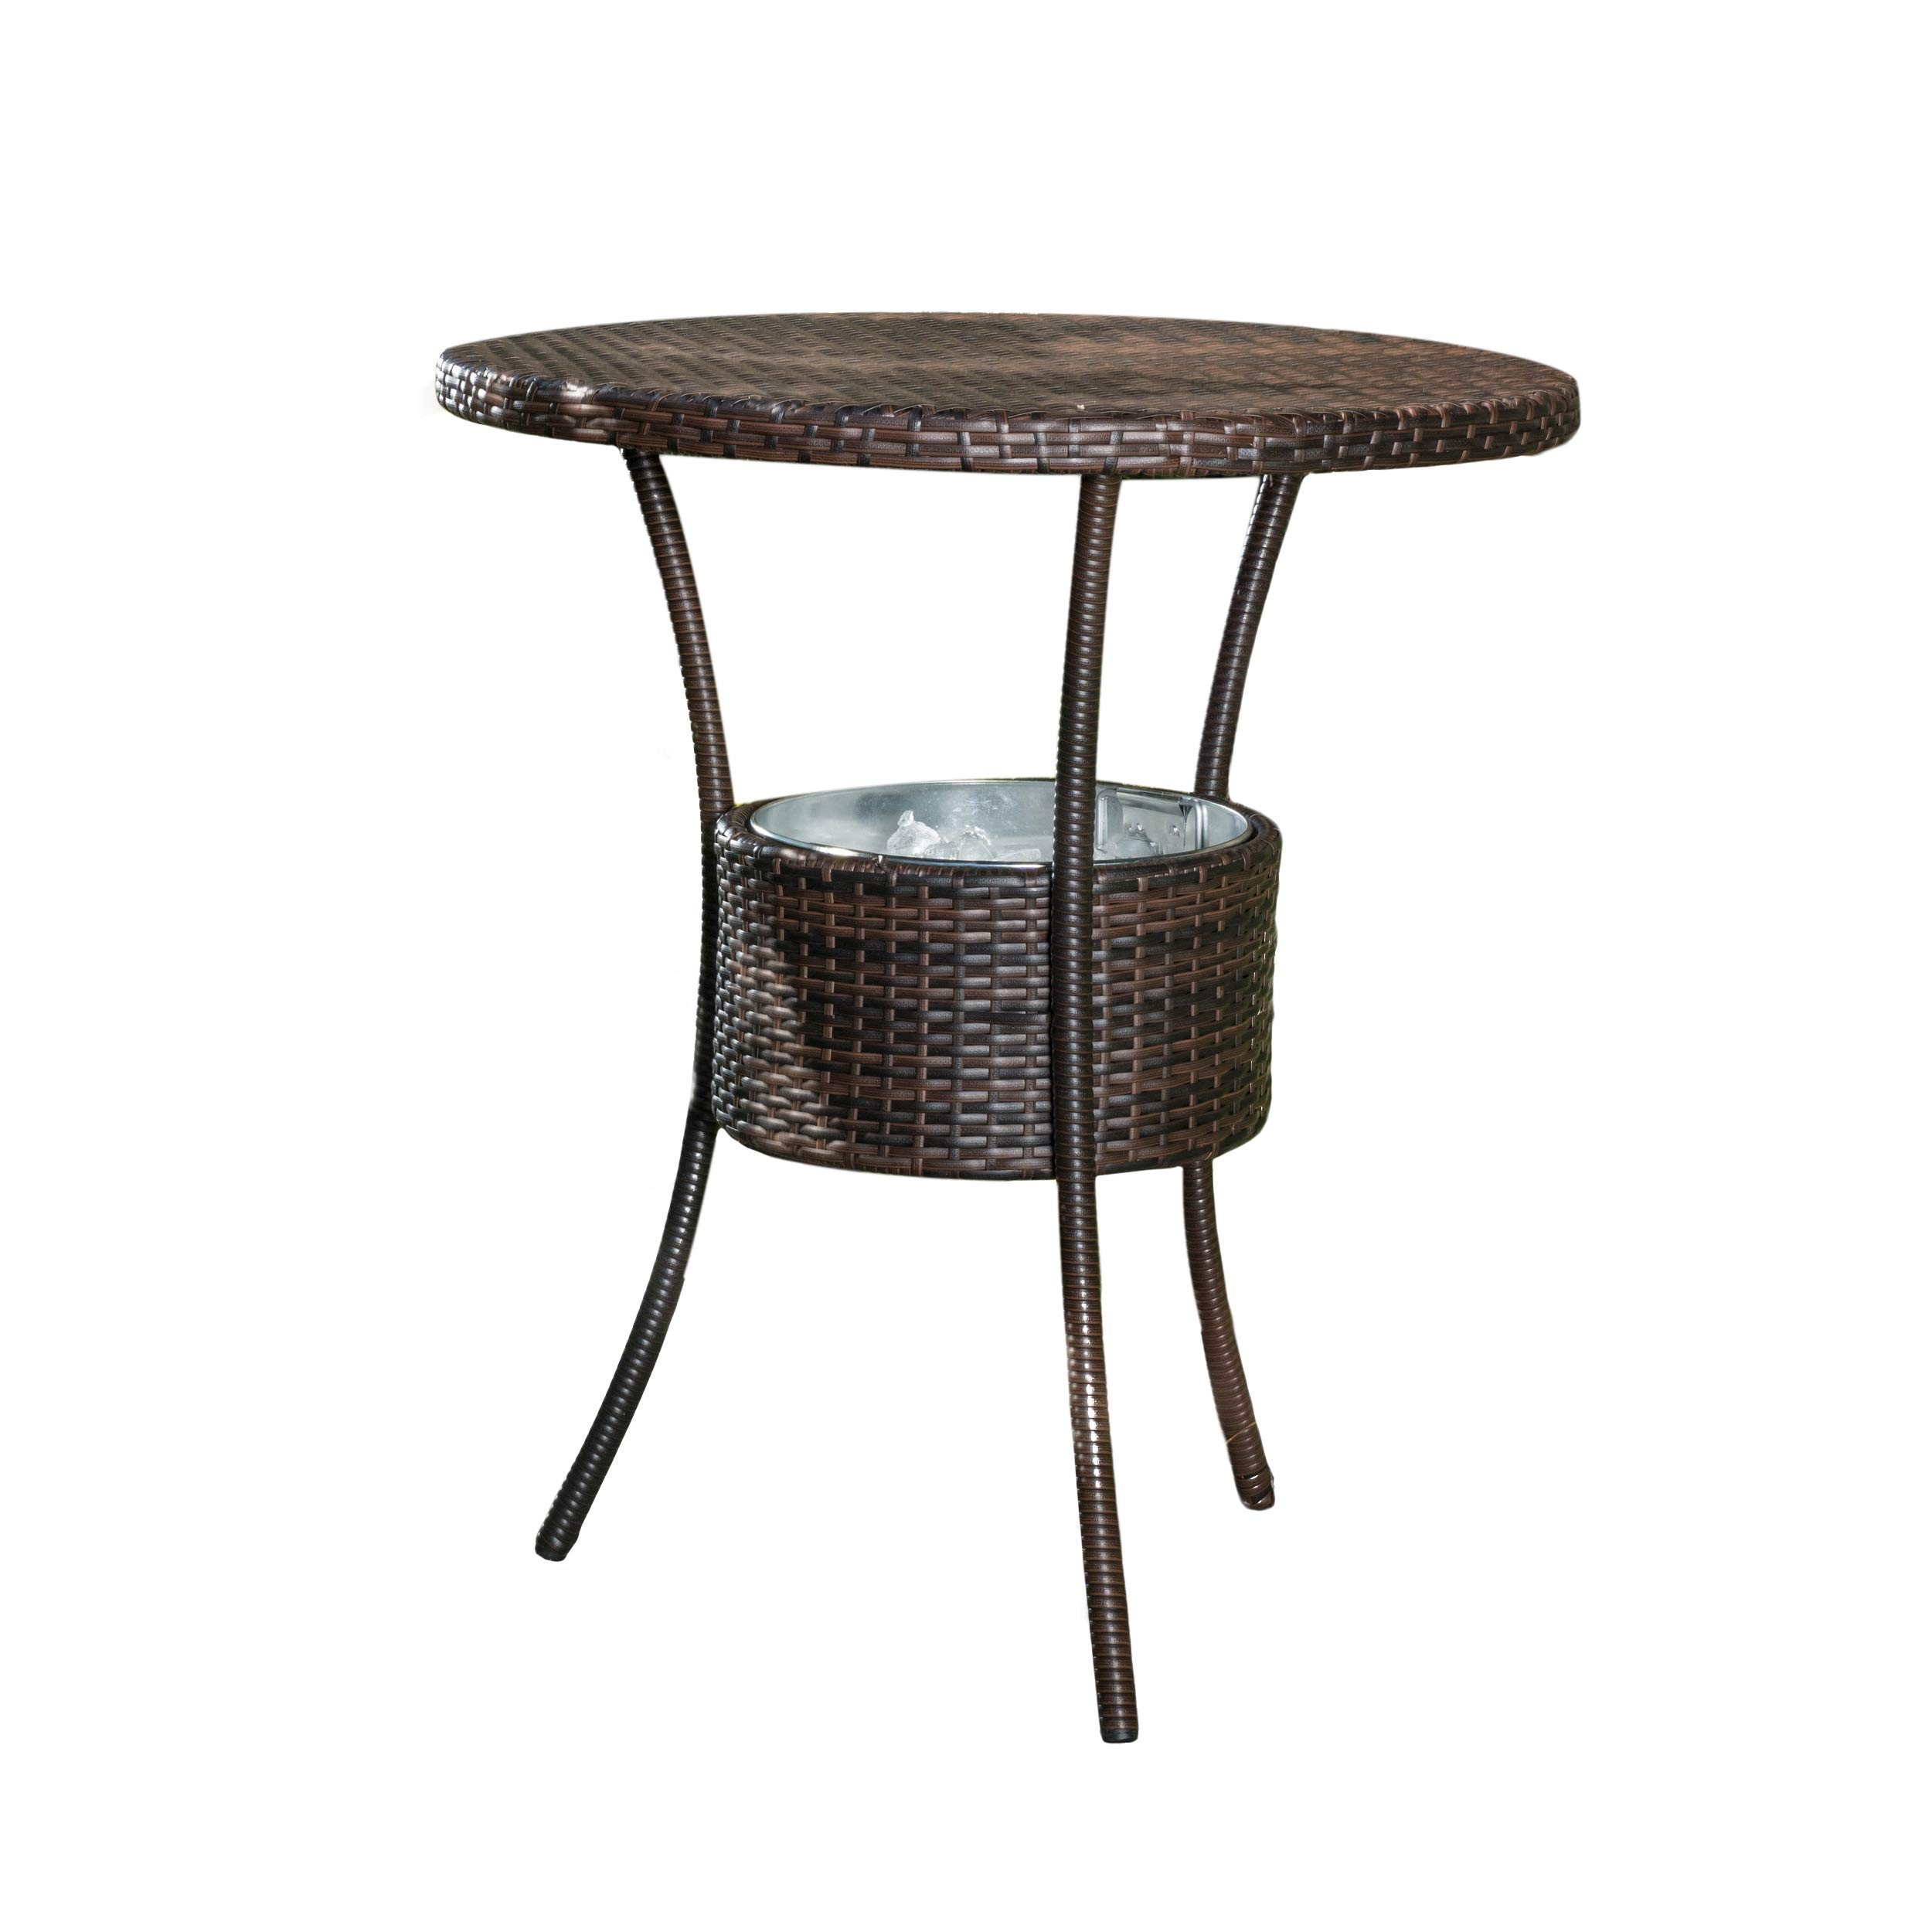 Christopher Knight Home Tampa Bay Multi Brown PE Table with Ice Pail